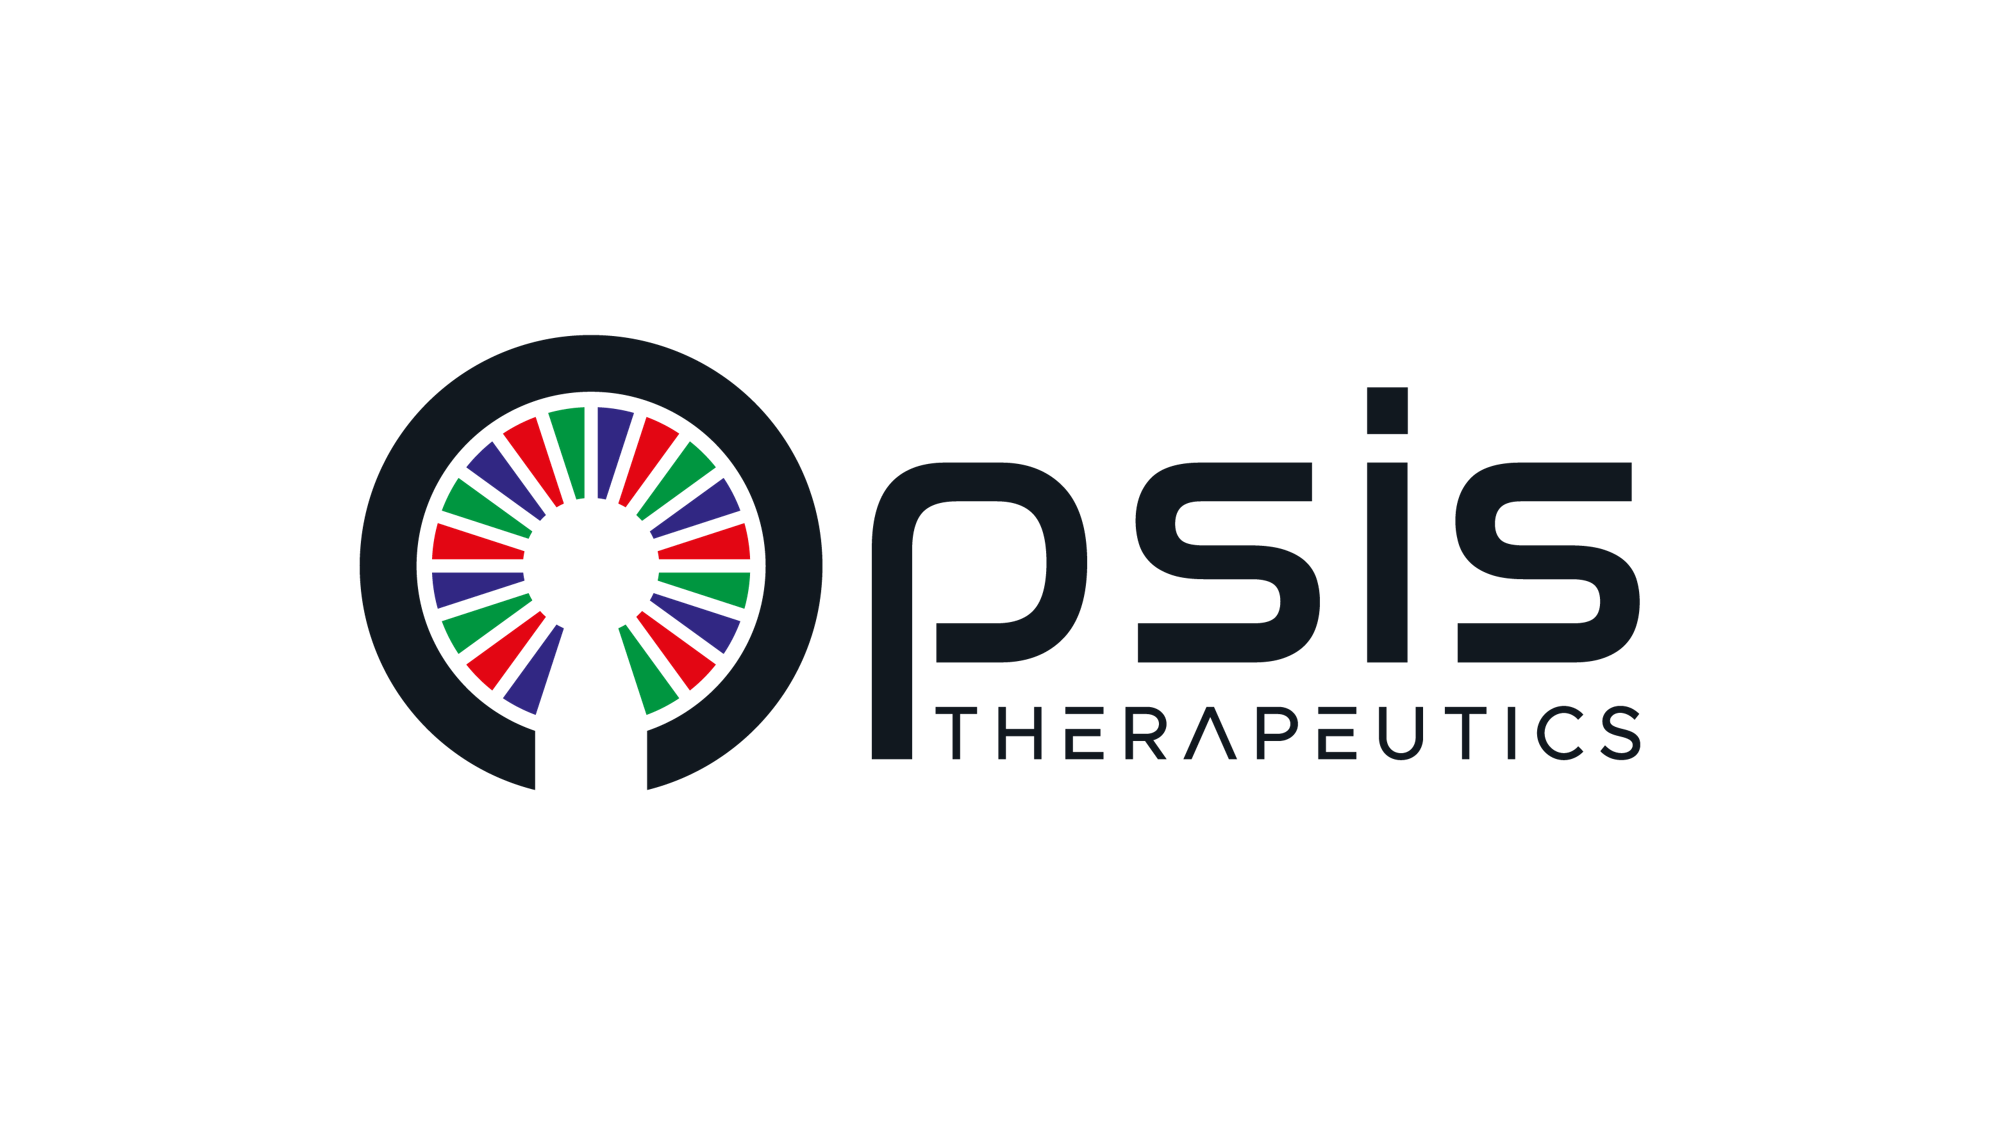 - Opsis Therapeutics is a company focused on discovering and developing new medicines to restore vision to patients suffering from retinal diseases. Founded and advised by world experts in retinal disease and cell manufacturing, Opsis Therapeutics is a partnership with FUJIFILM Cellular Dynamics Inc. (FCDI).